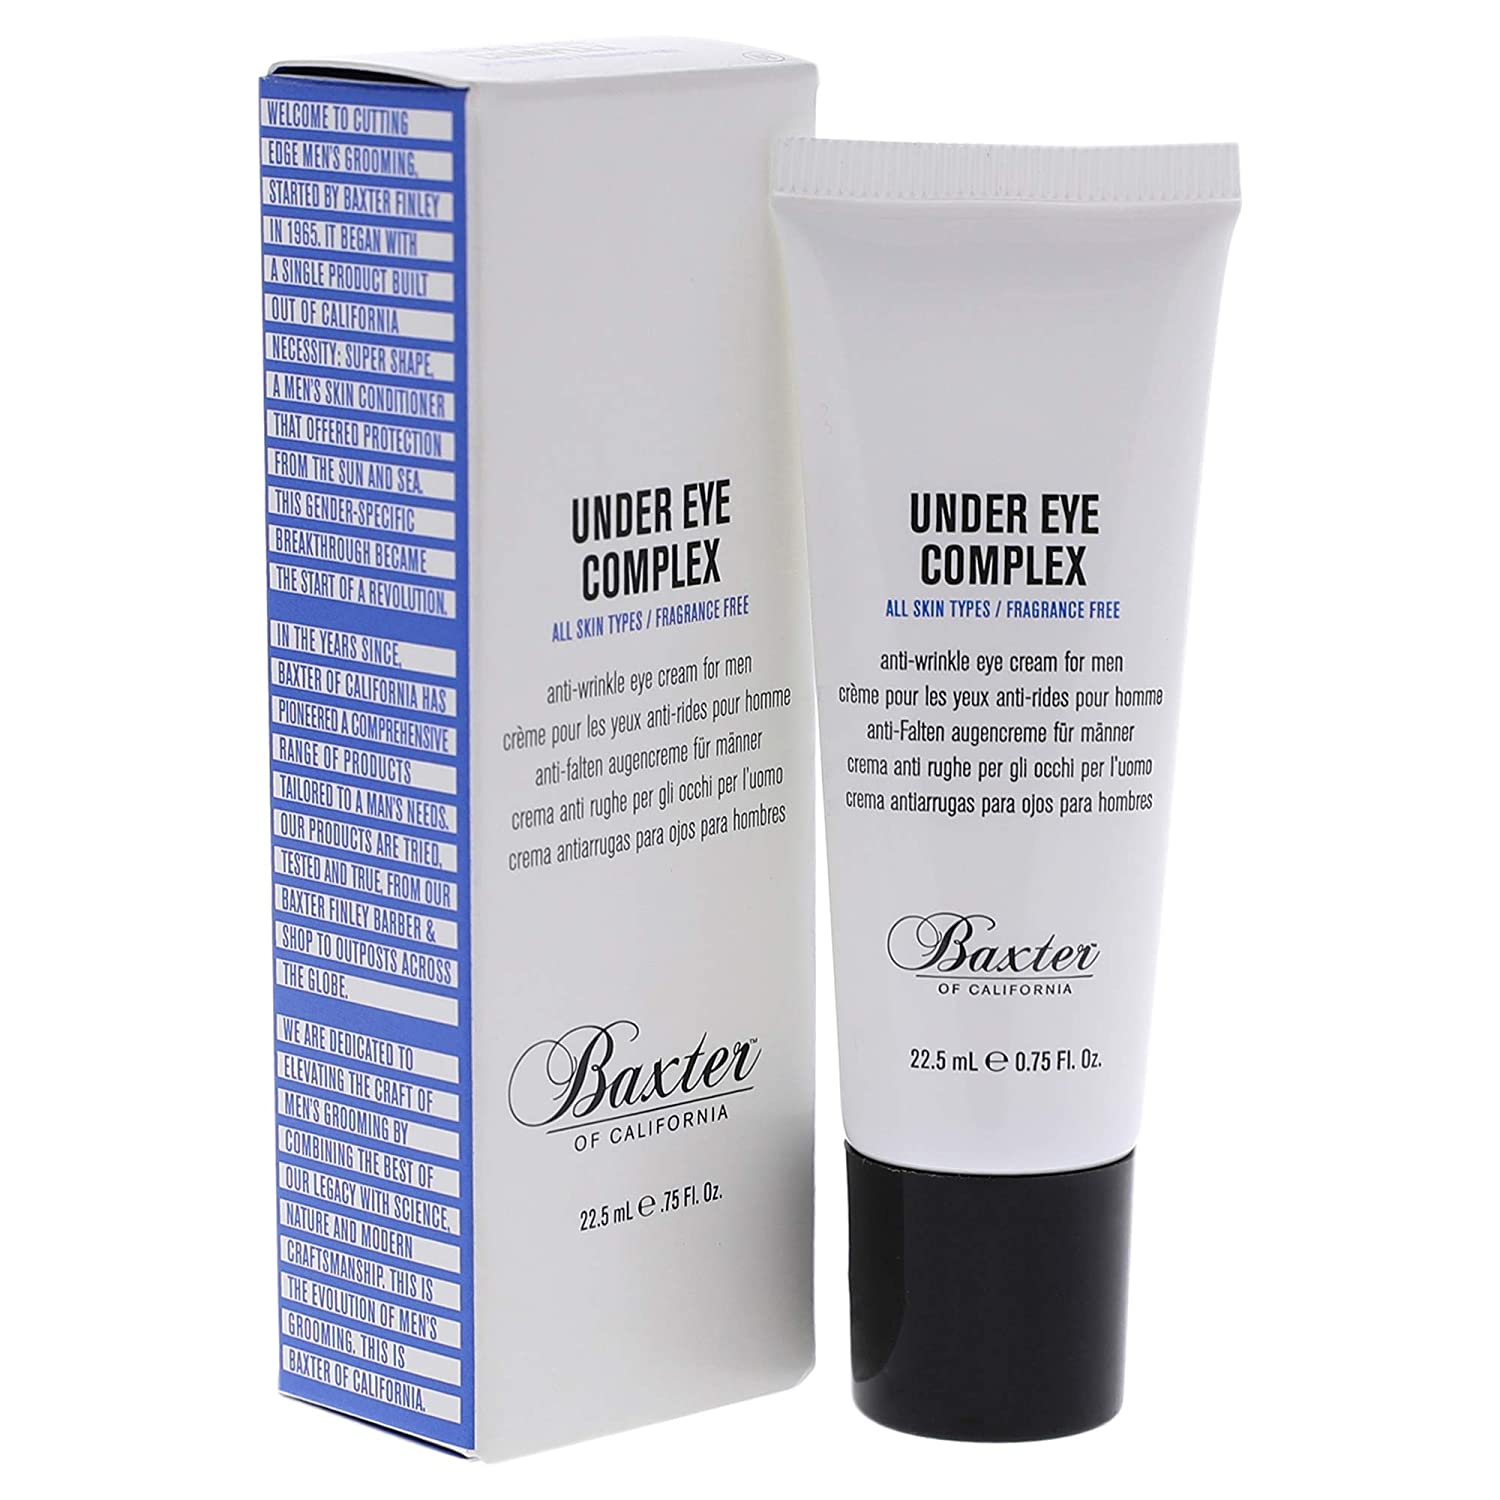 Baxter of California Under Eye Cream for Men; best men's skincare products